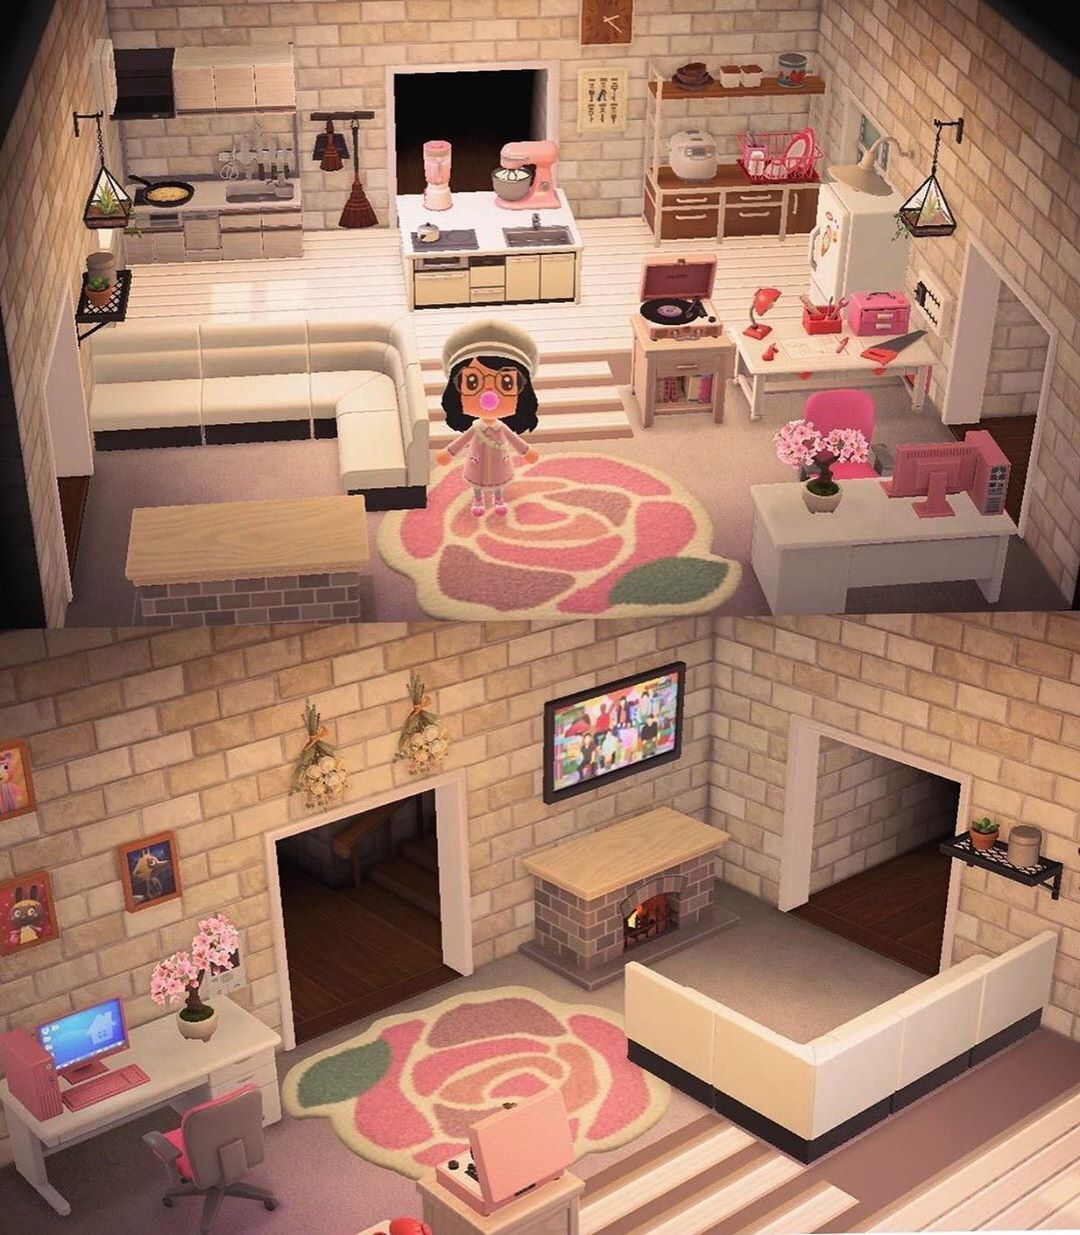 Animal Crossing Inspiration On Instagram Kitchen And Living Room In One By Ariepudo Reddit Animal Crossing Animal Crossing 3ds Animal Crossing Game